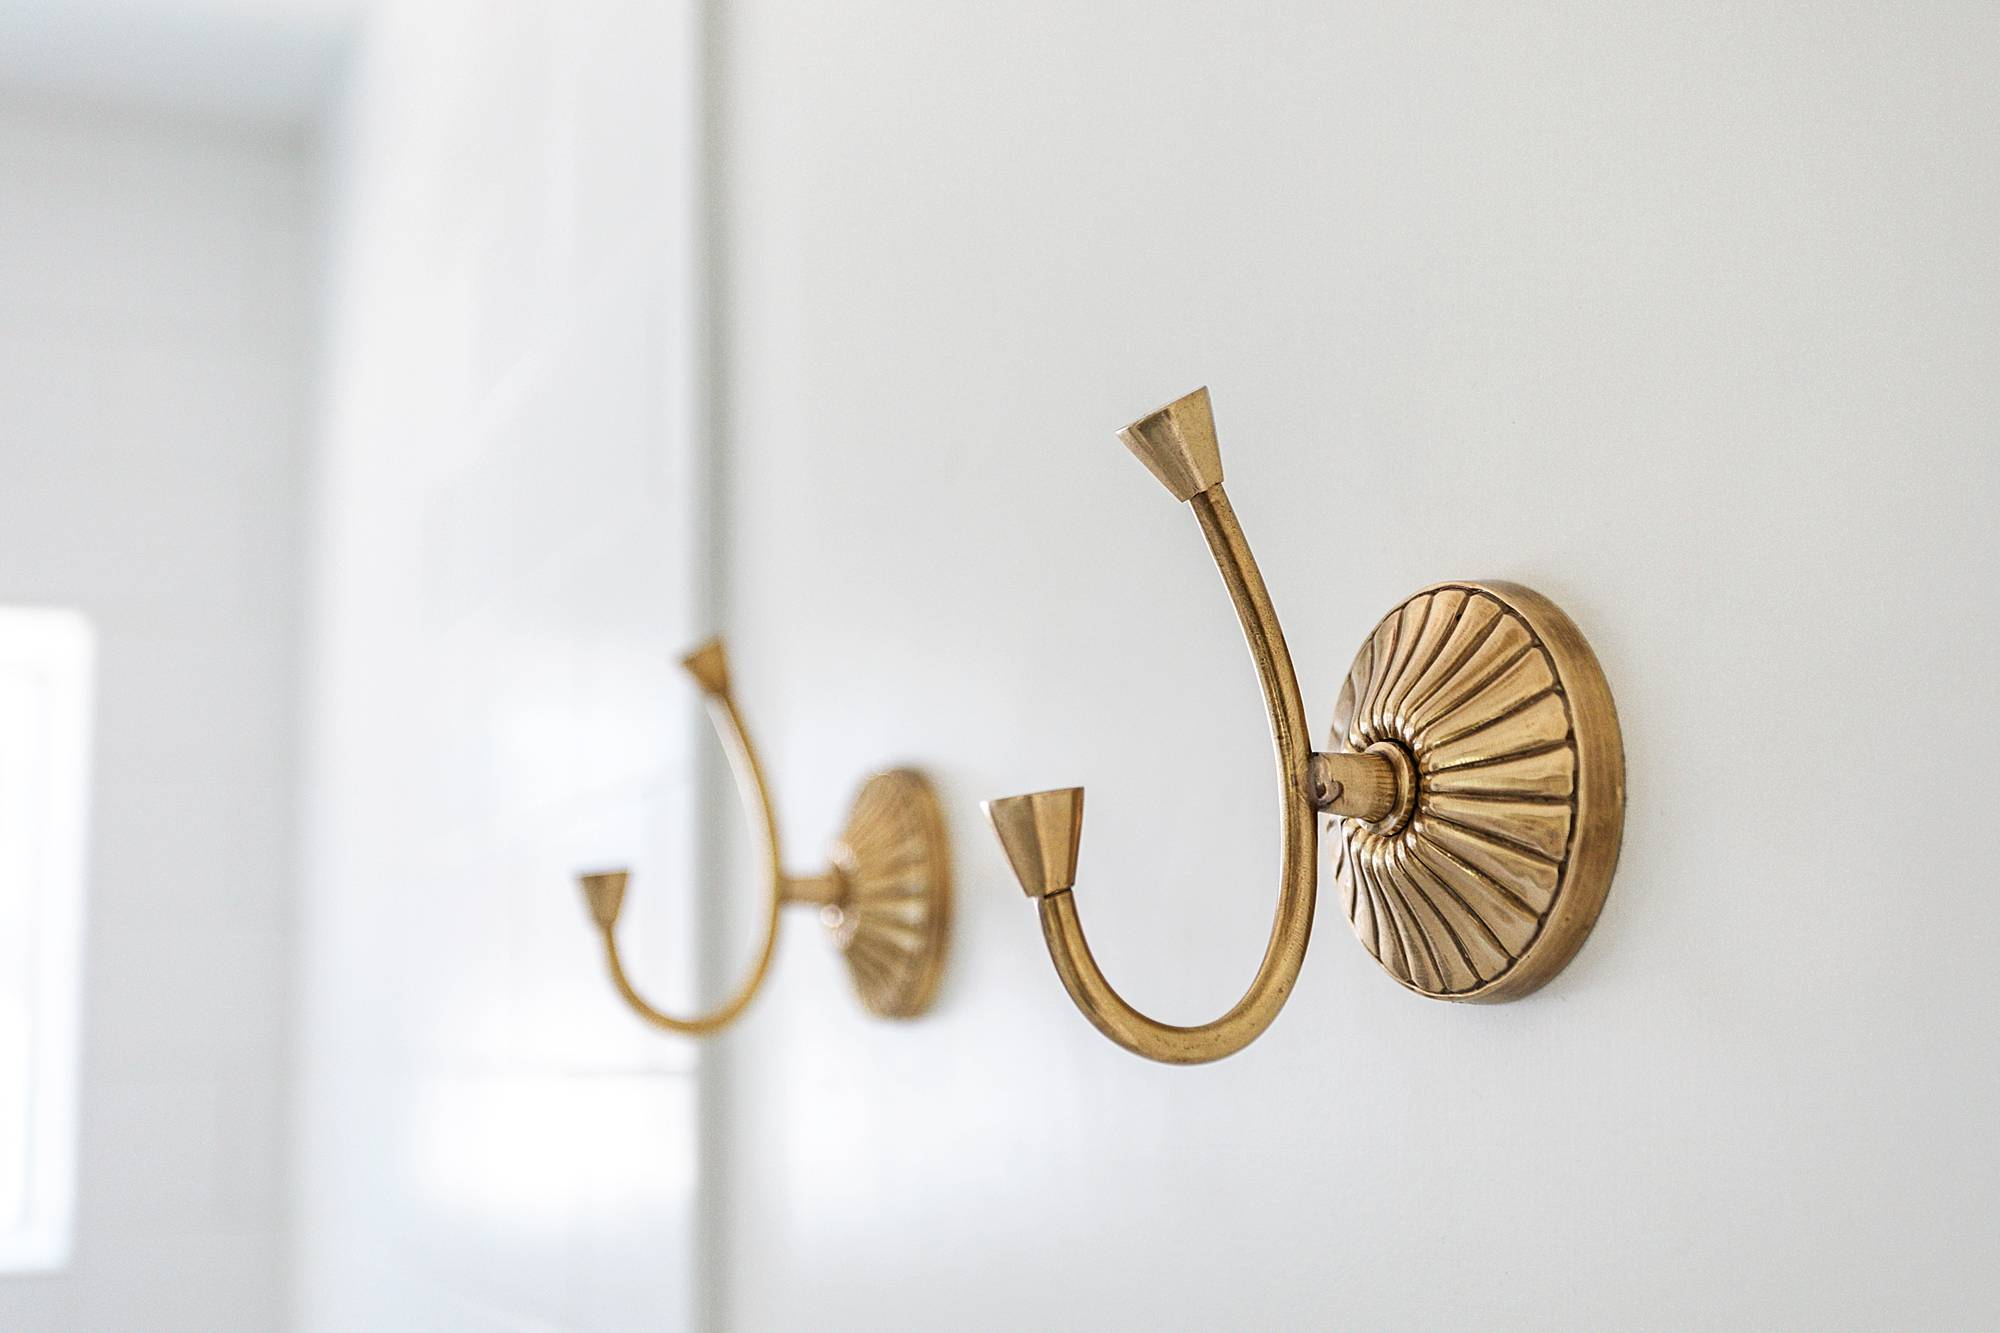 towel hooks brass from Anthropologie